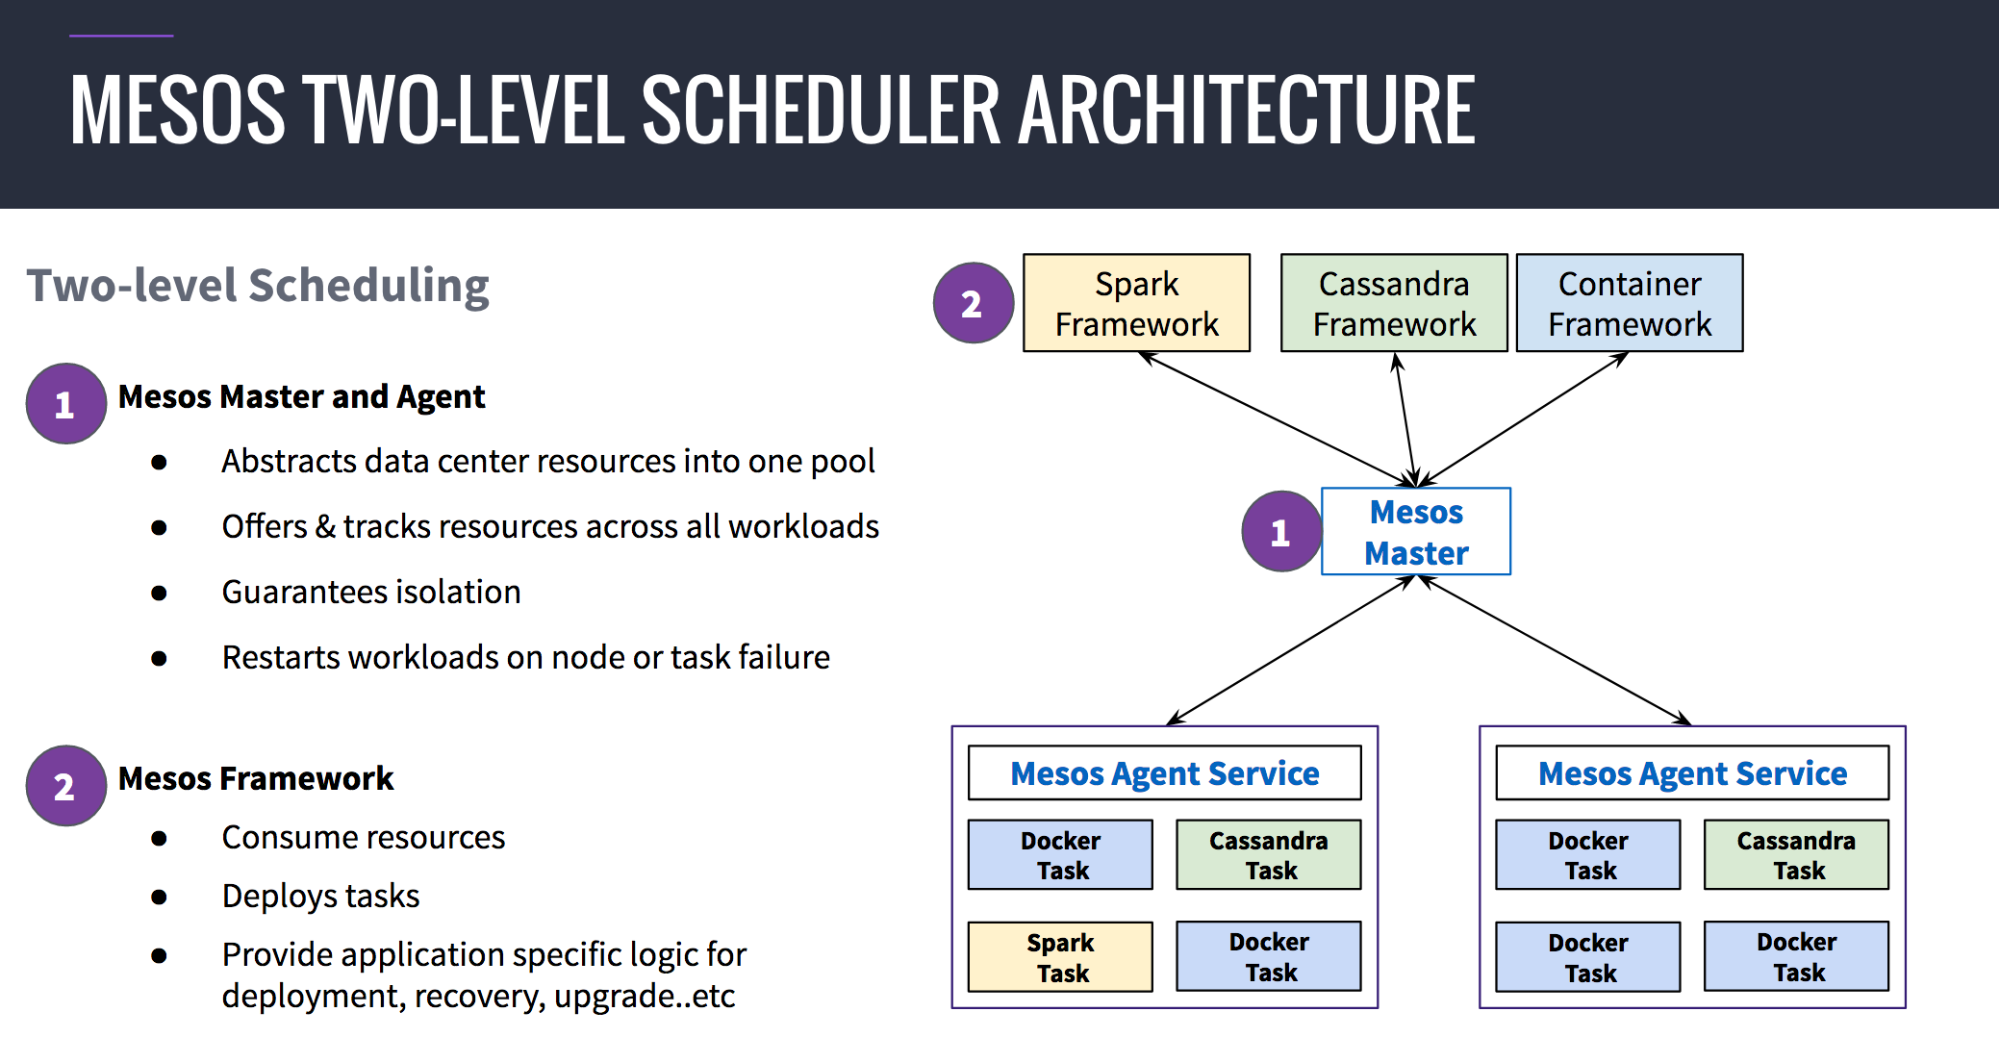 Mesos two-level scheduler